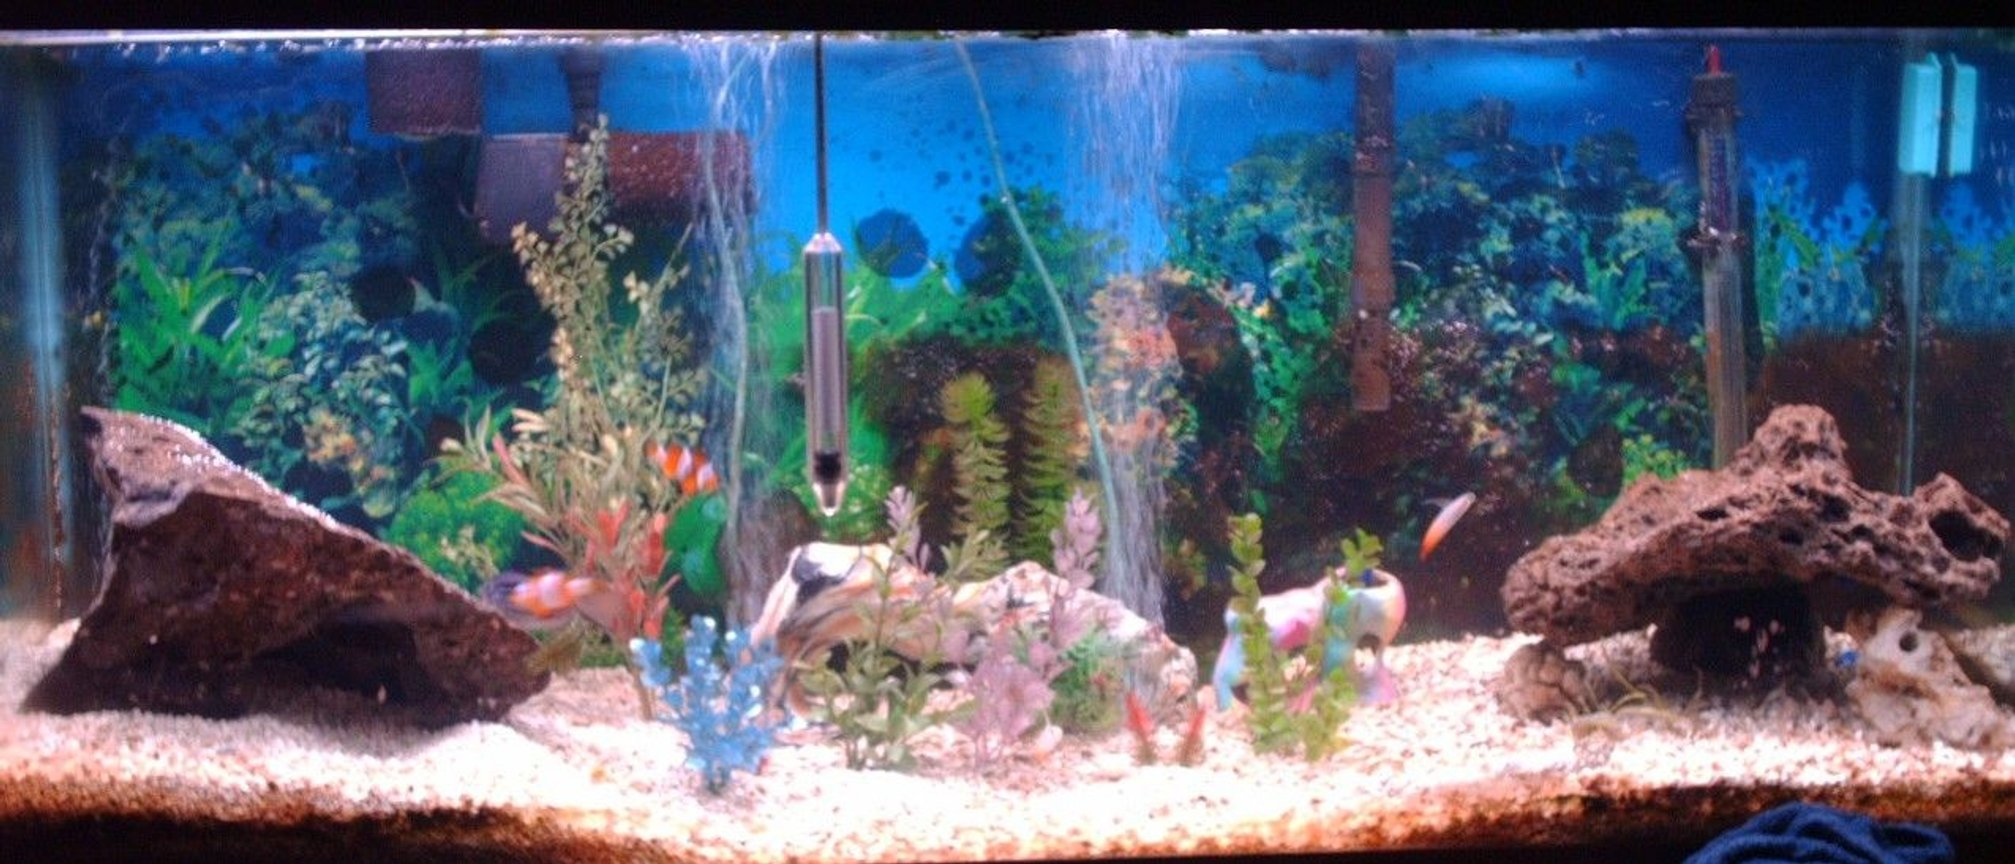 75 gallons saltwater fish tank (mostly fish, little/no live coral) - this is my favorite pic.